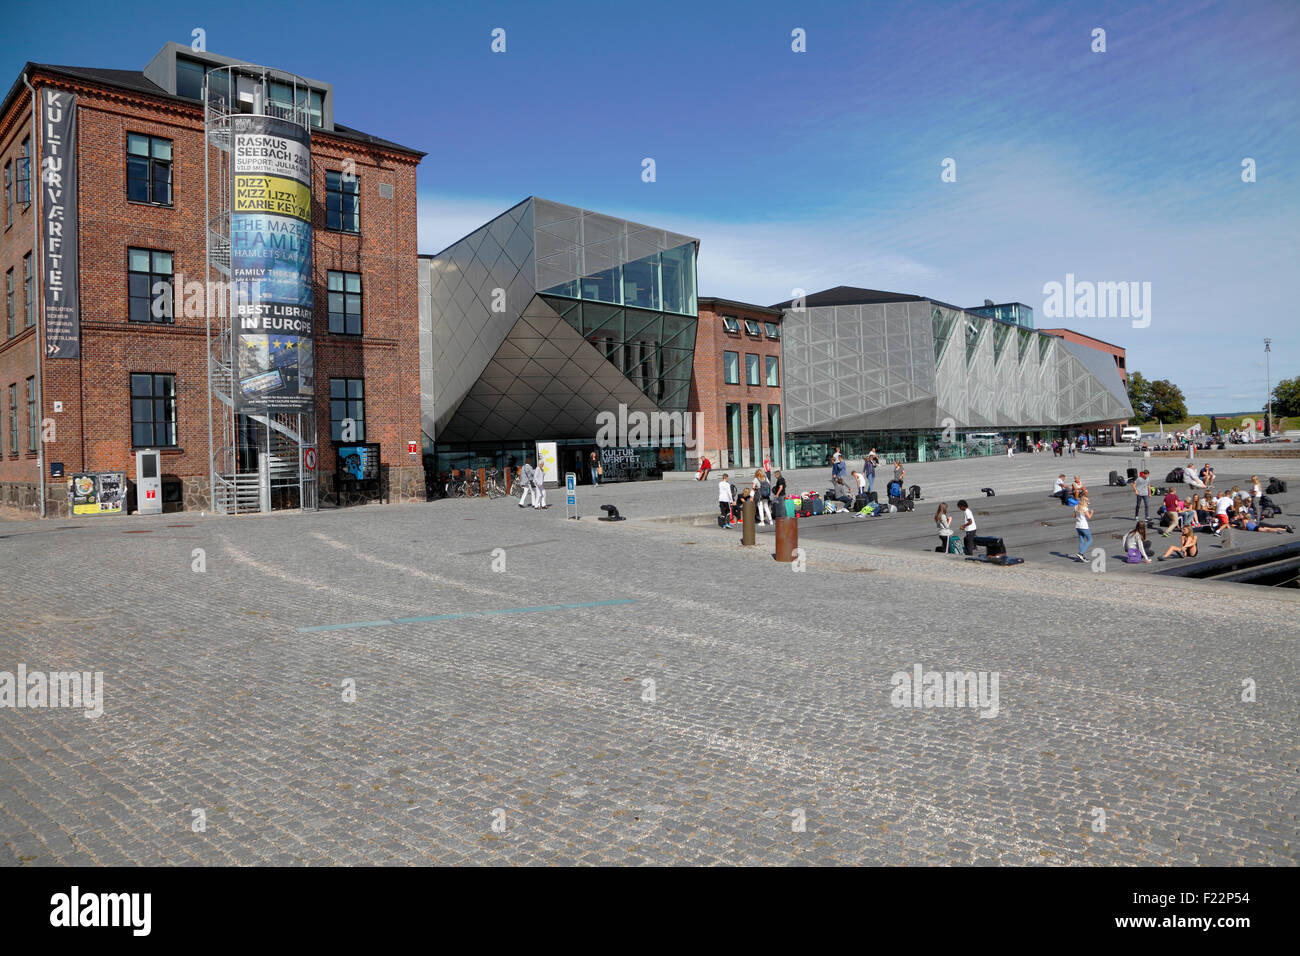 The Culture Yard in the area and buildings of the old shipyard on the waterfront in Elsinore Harbour, Helsingør, - Stock Image